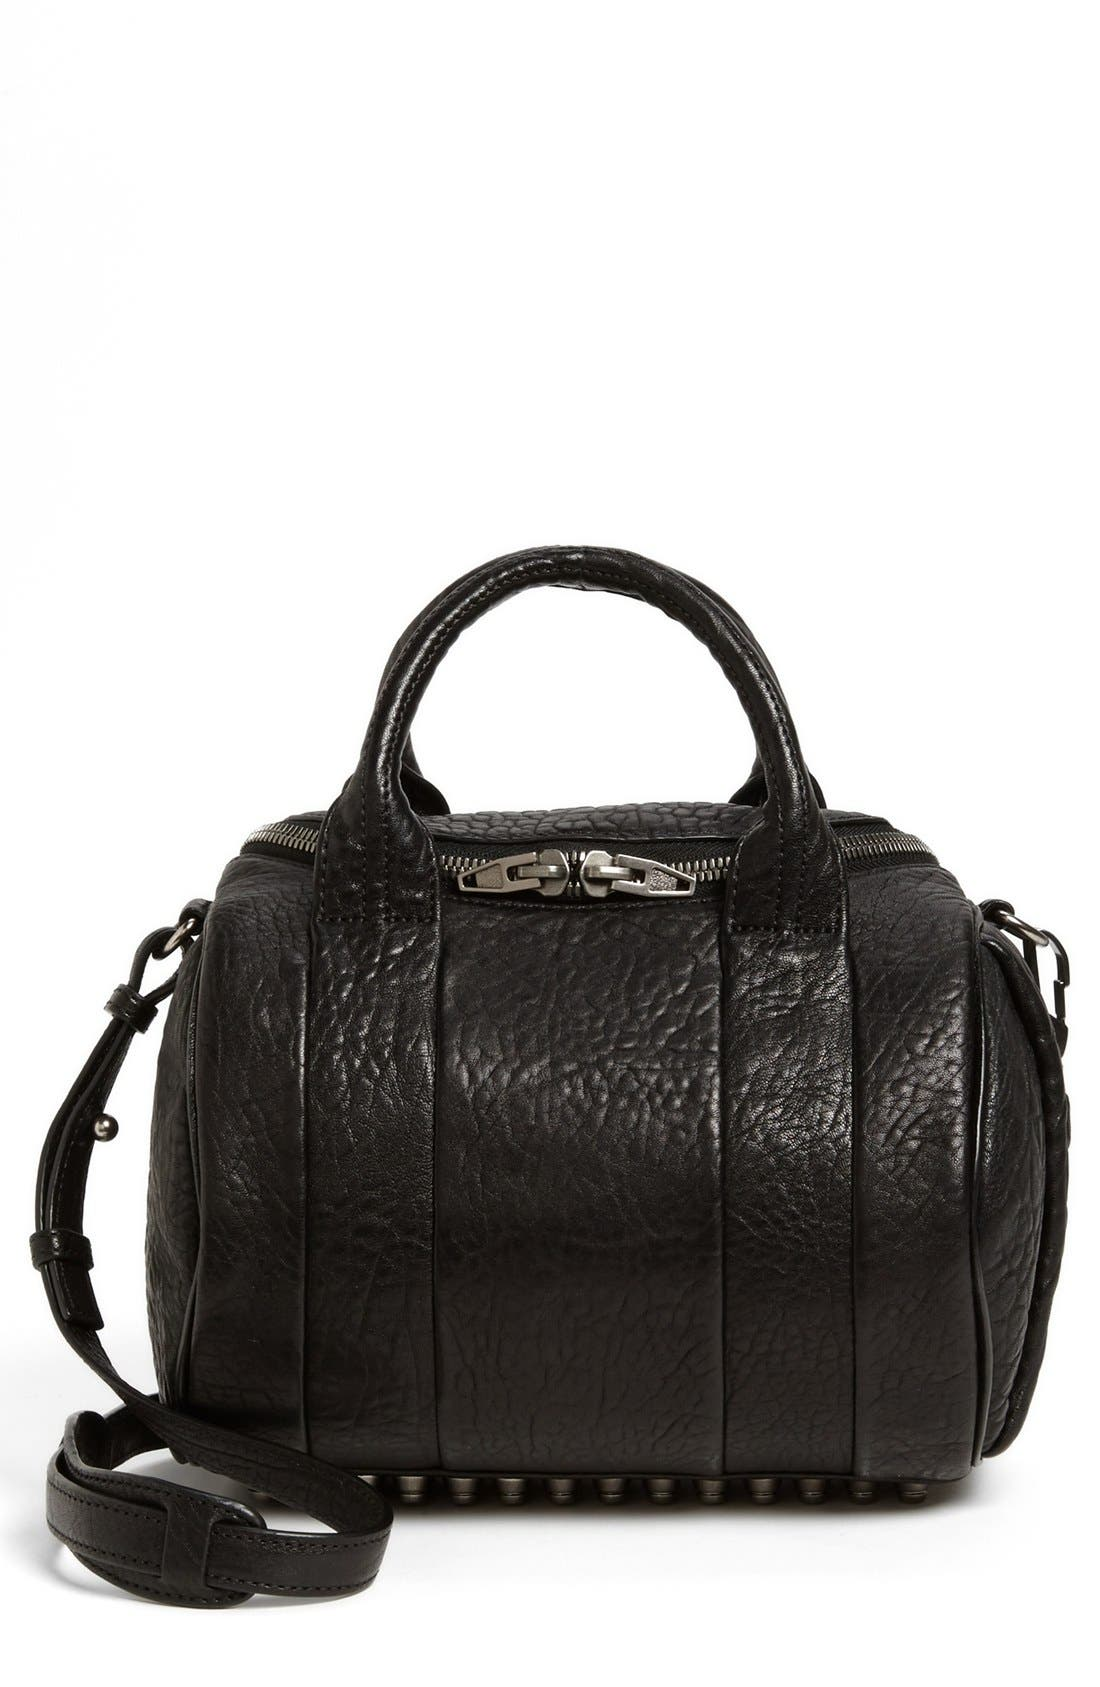 Main Image - Alexander Wang 'Rockie - Black Nickel' Leather Crossbody Satchel